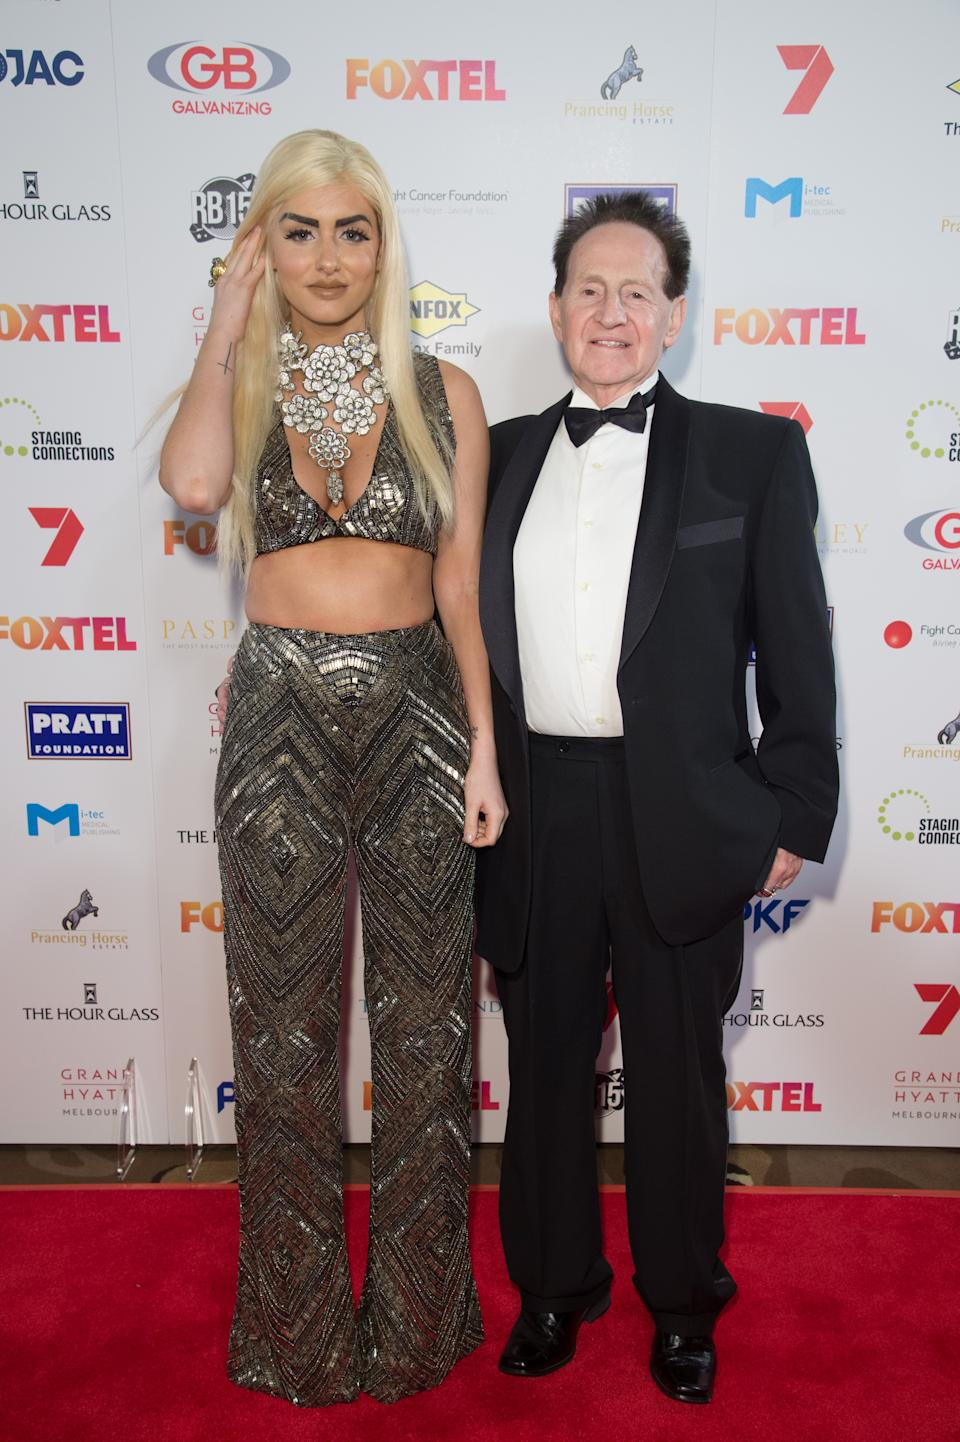 Geoffrey Edelsten and Gabi Grecko arrive ahead of the Red Ball 2015 at the Grand Hyatt on September 5, 2015 in Melbourne